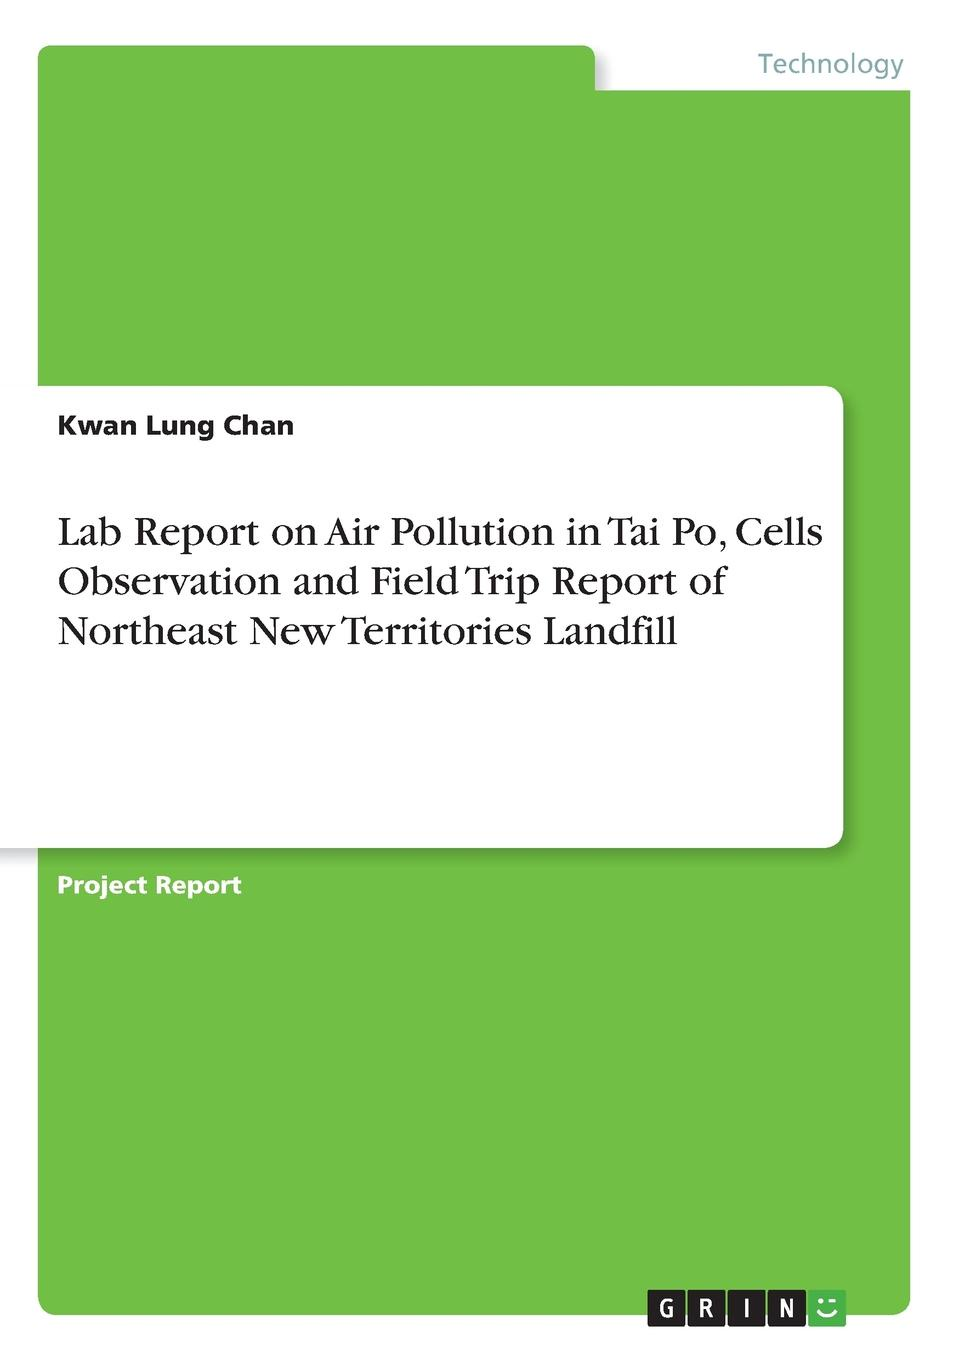 Kwan Lung Chan Lab Report on Air Pollution in Tai Po, Cells Observation and Field Trip Report of Northeast New Territories Landfill цена